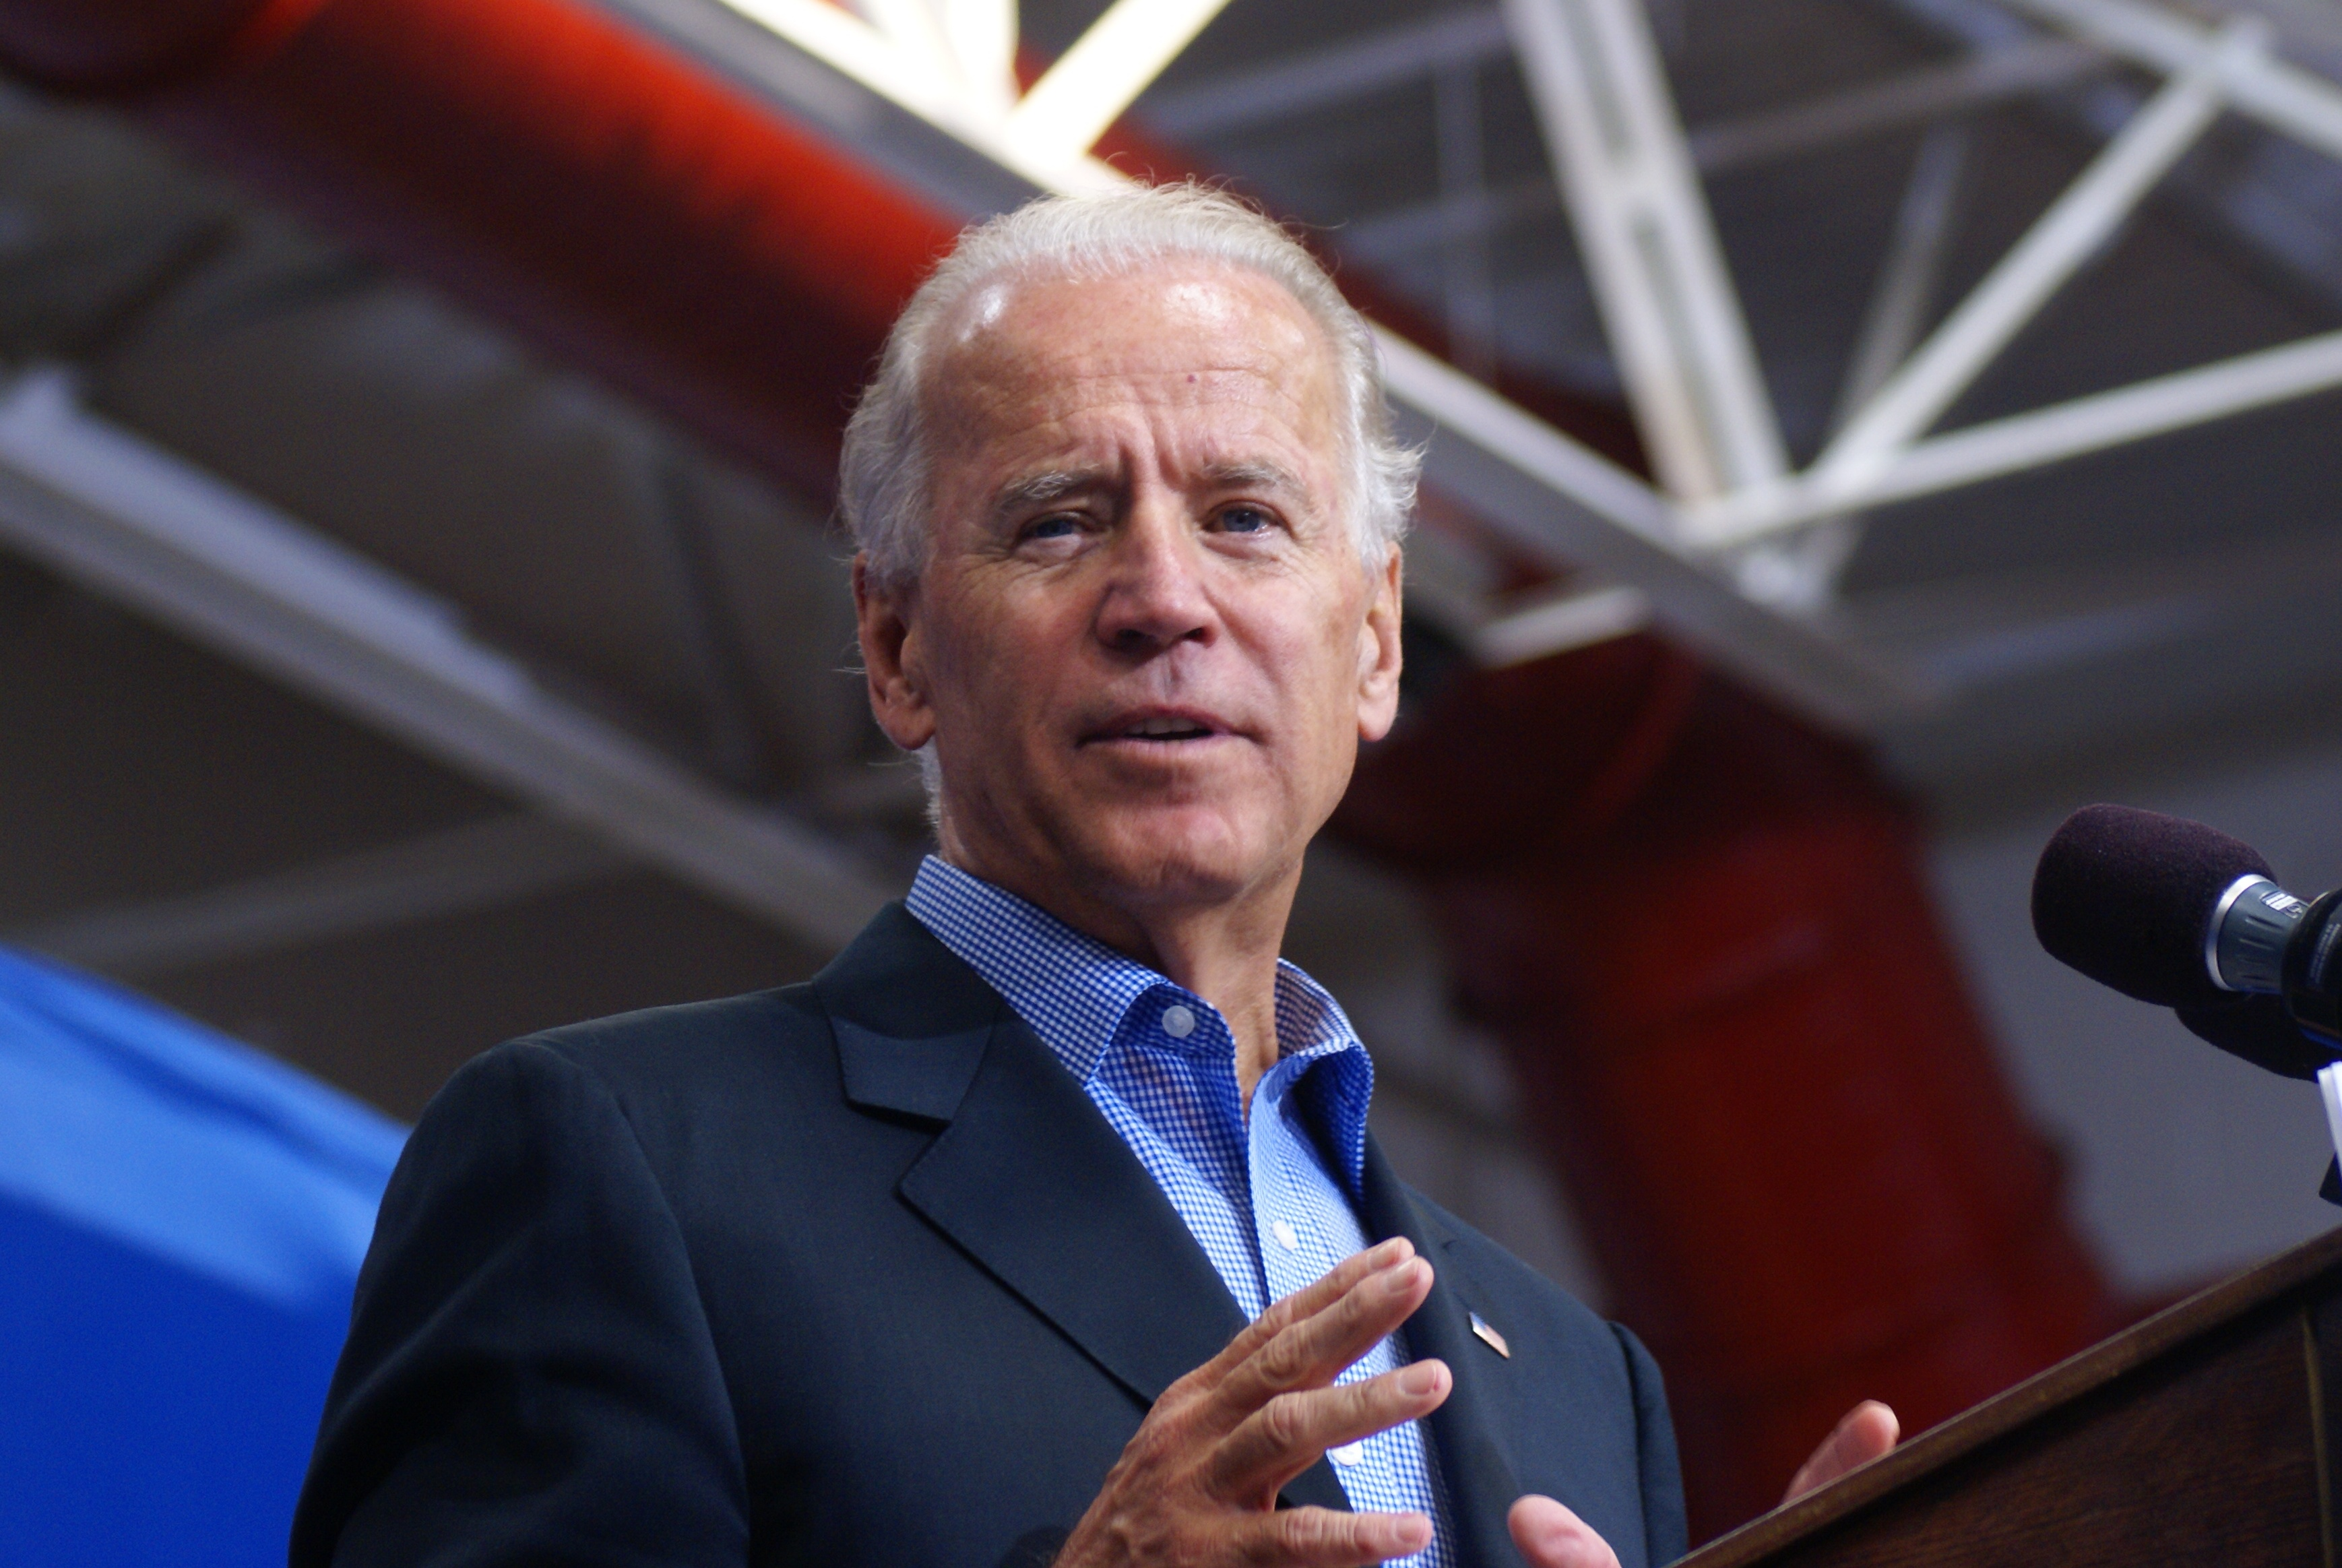 Joe Biden Speaking in a campaign event in 2012 in Merrimack, New Hampshire, Marc Nozell, Creative Commons